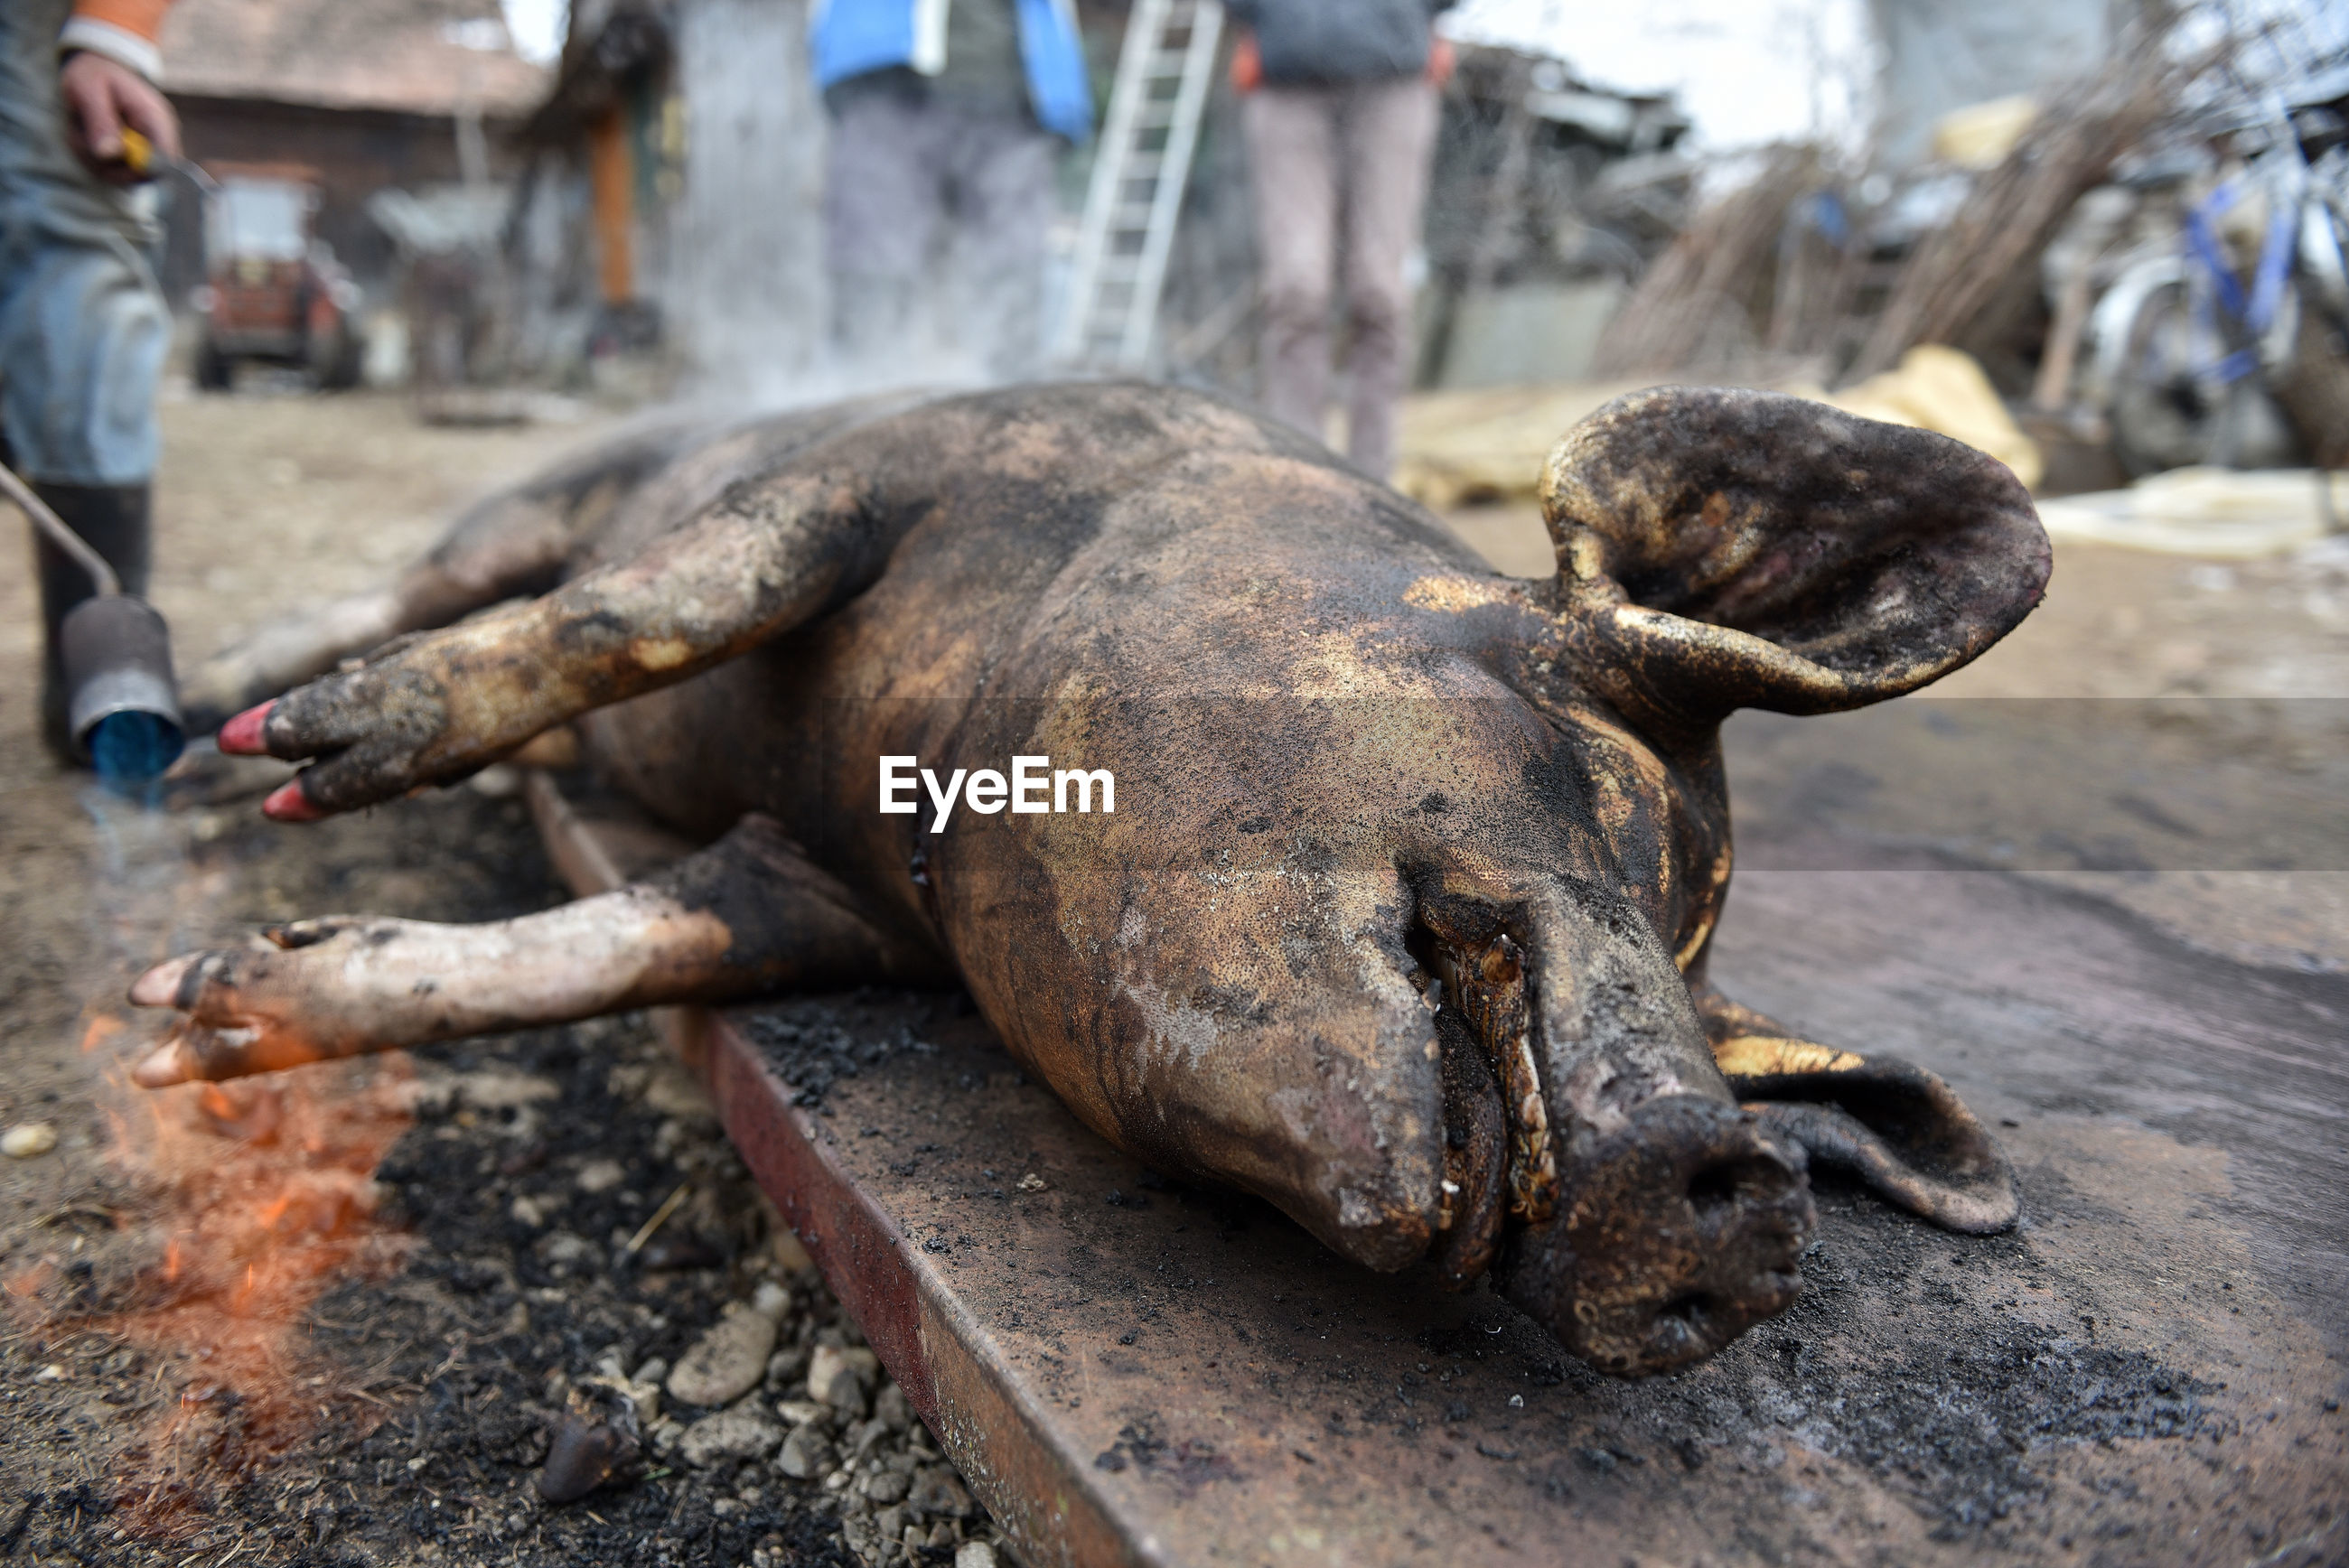 Low section of butcher standing by dead pig on metal